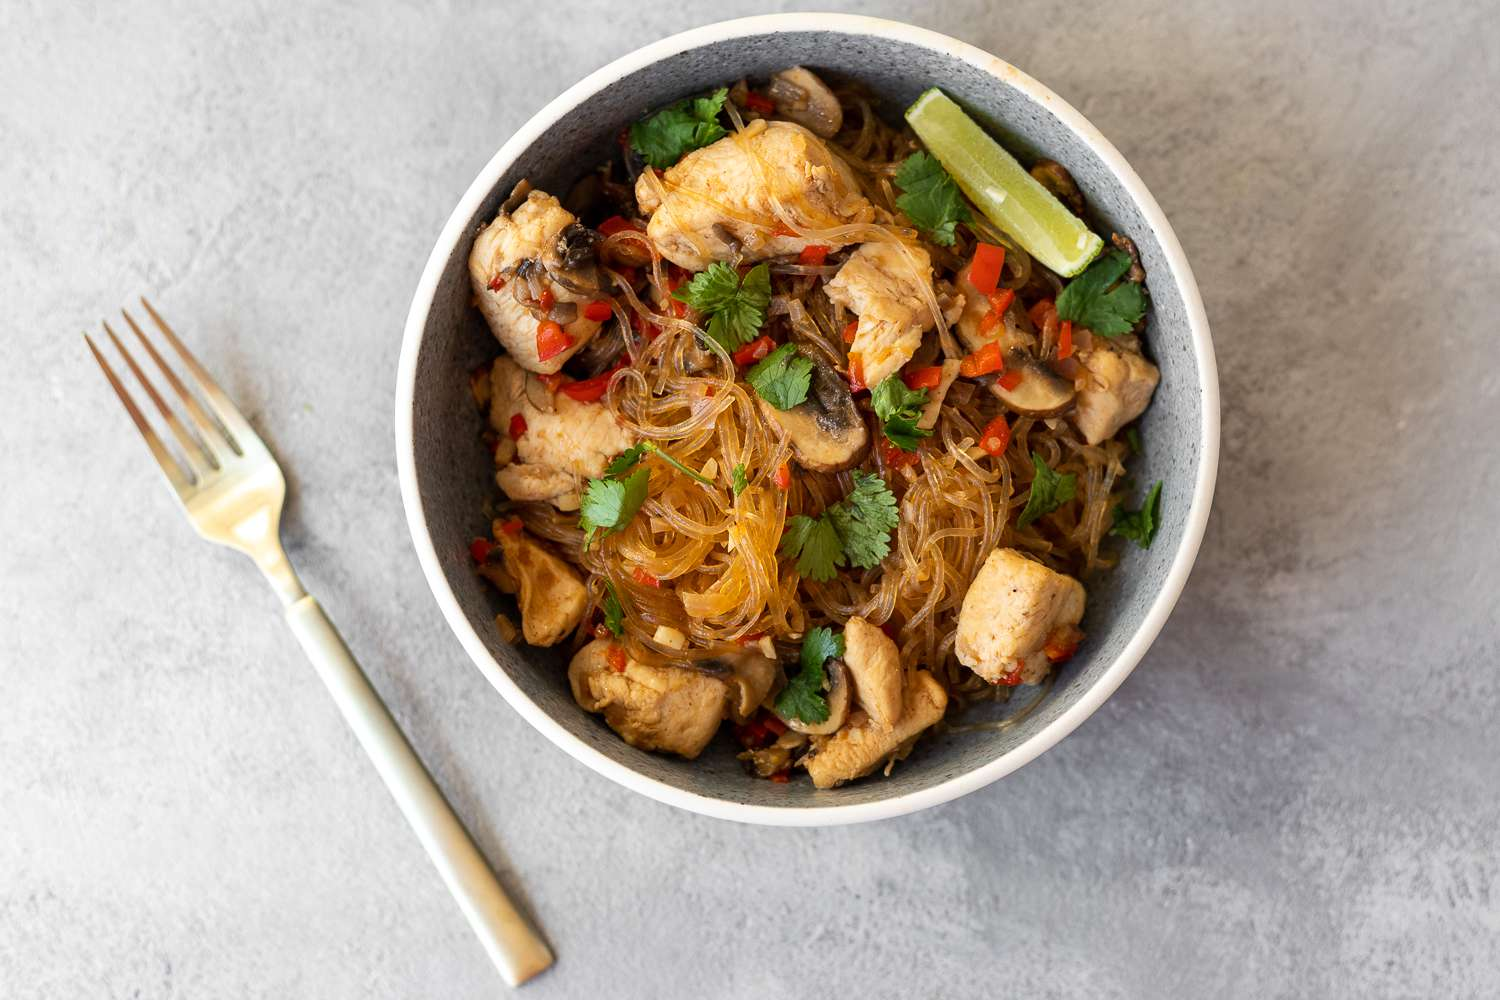 Thai Glass Noodle Stir-Fry With Chicken and Vegetables in a bowl